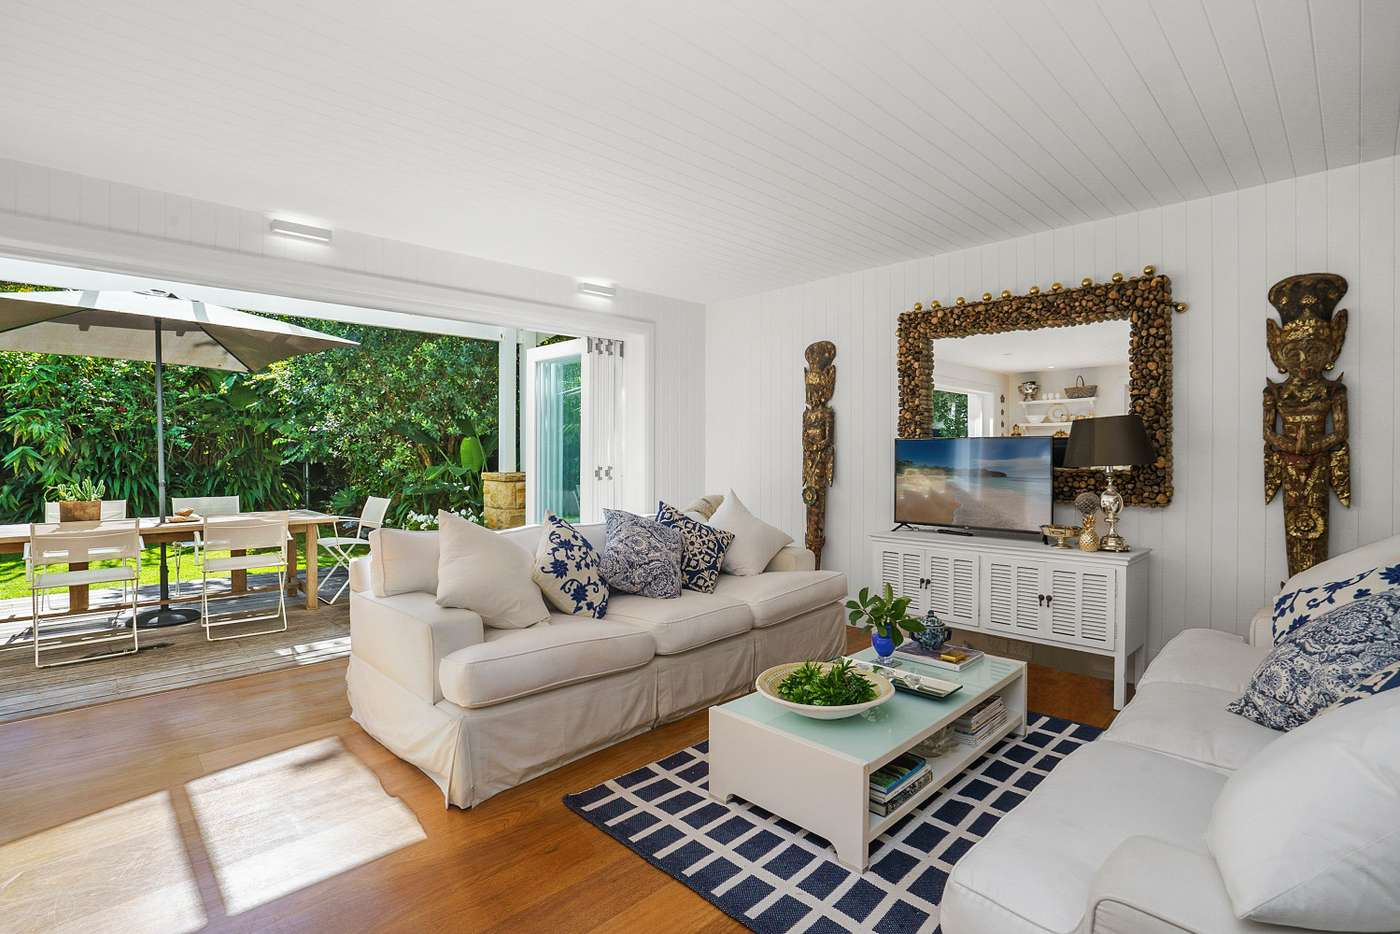 Fifth view of Homely house listing, 3 Iluka Road, Palm Beach NSW 2108